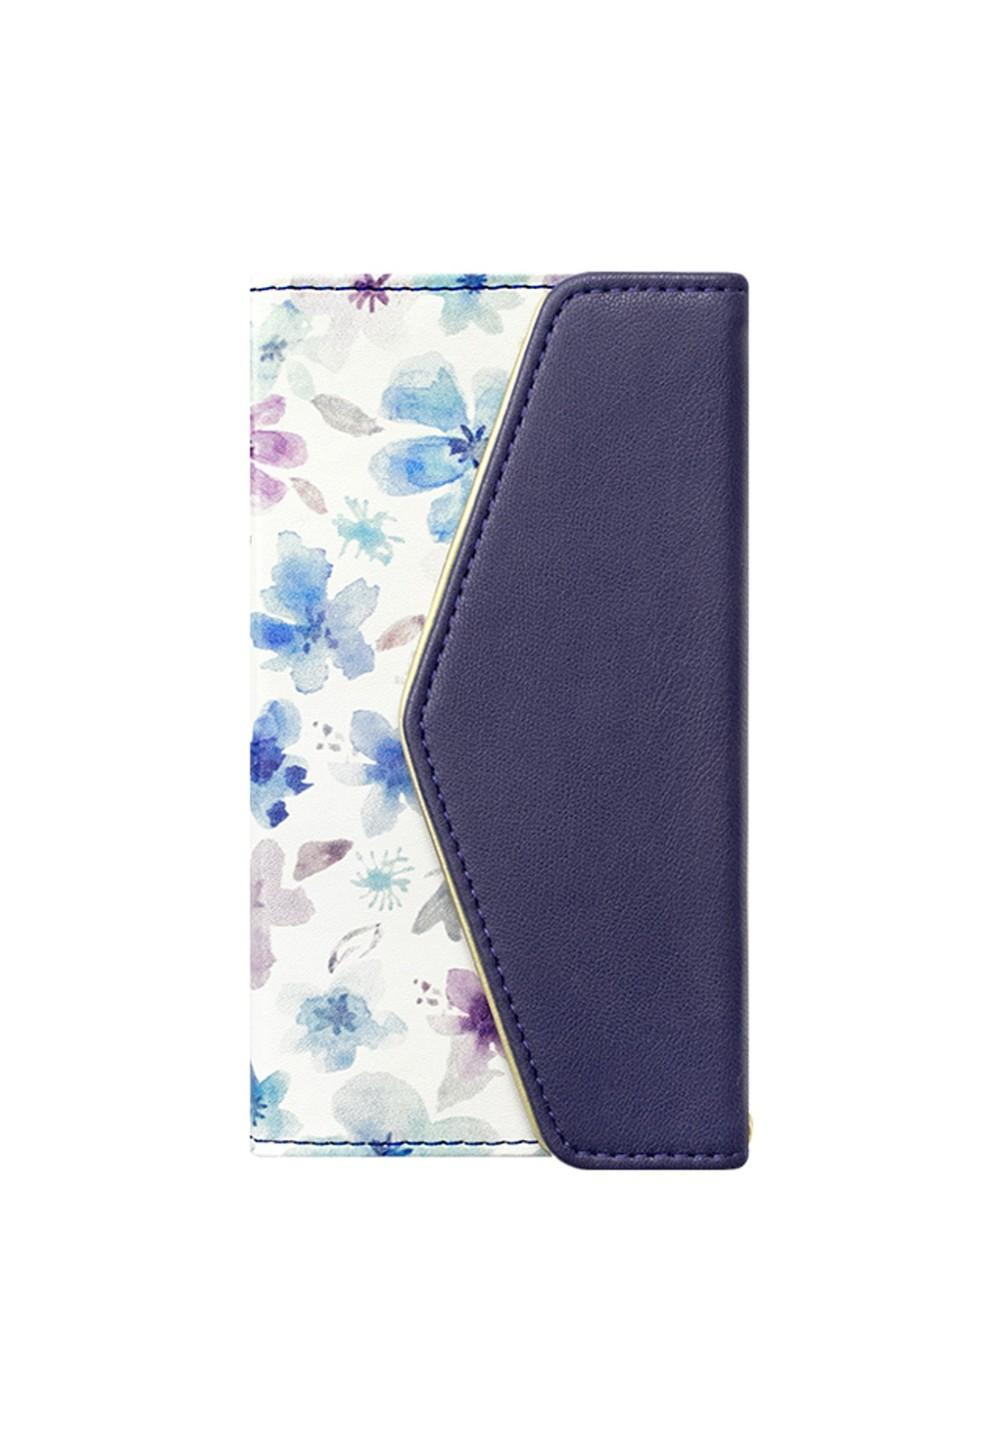 UNiCASE BLUE LABEL / Flower Series mirror case for iPhoneX(Watery Blue) - #1